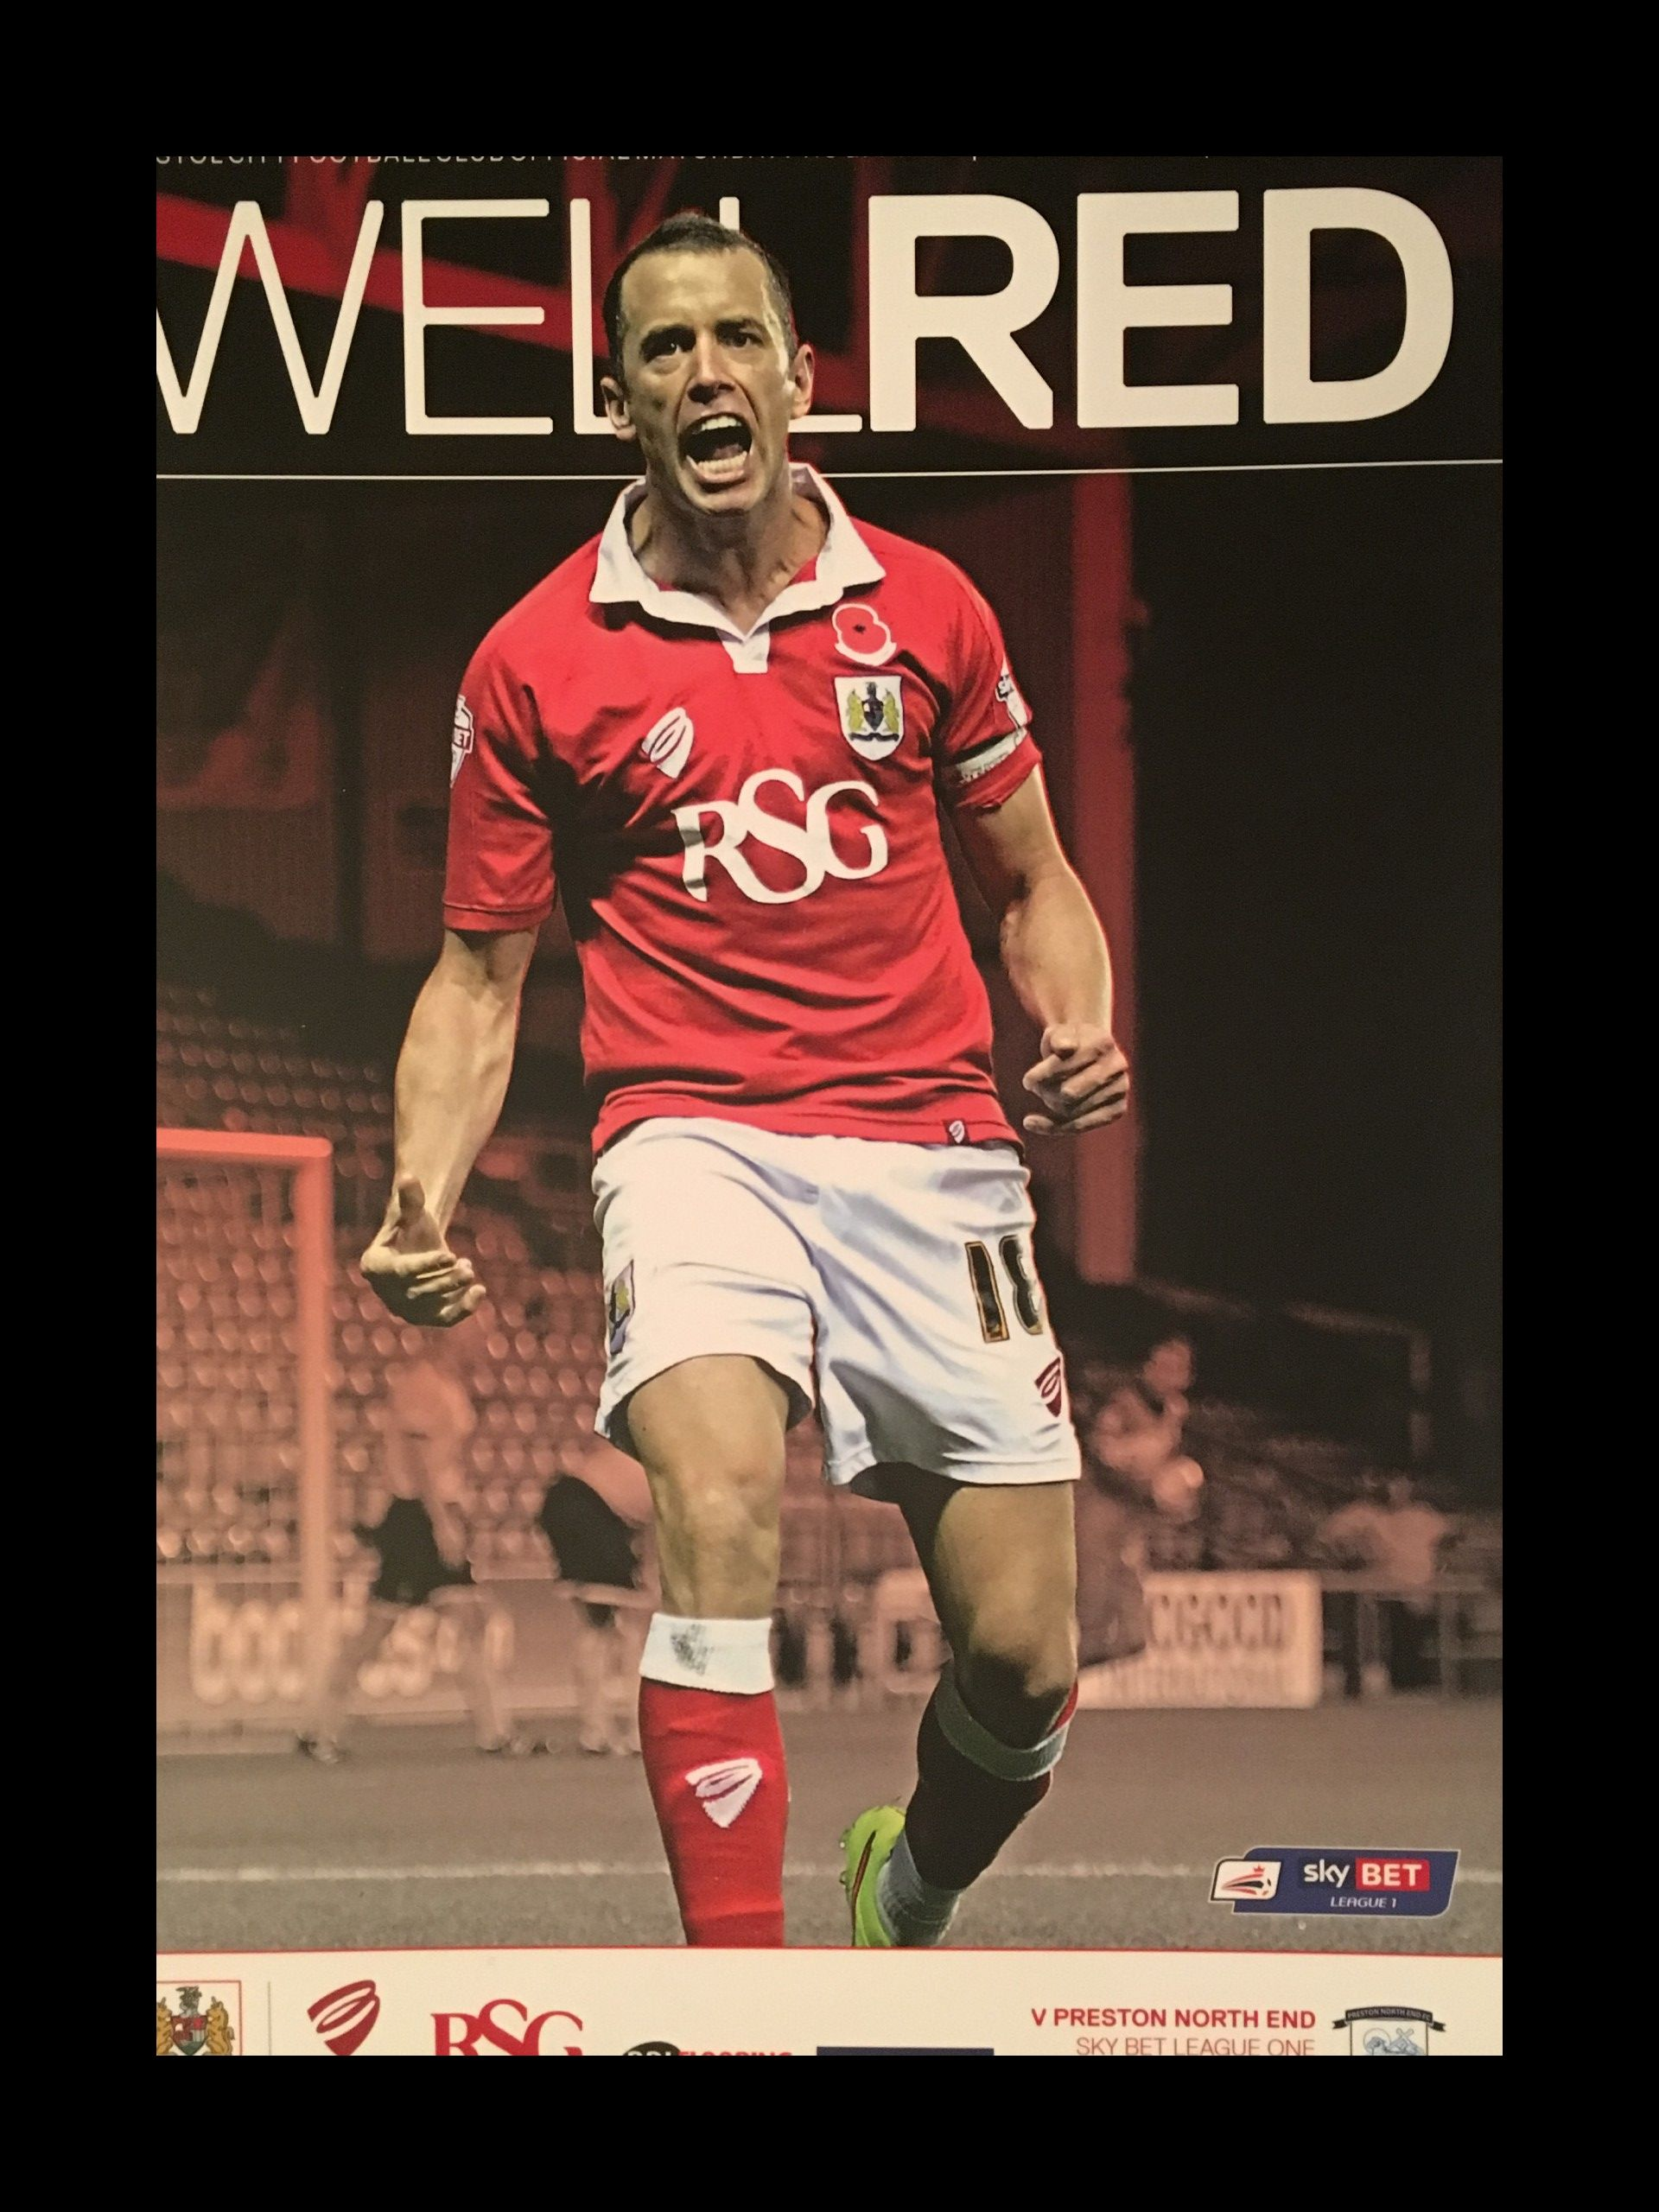 Bristol City v Preston North End 22-11-2014 Programme